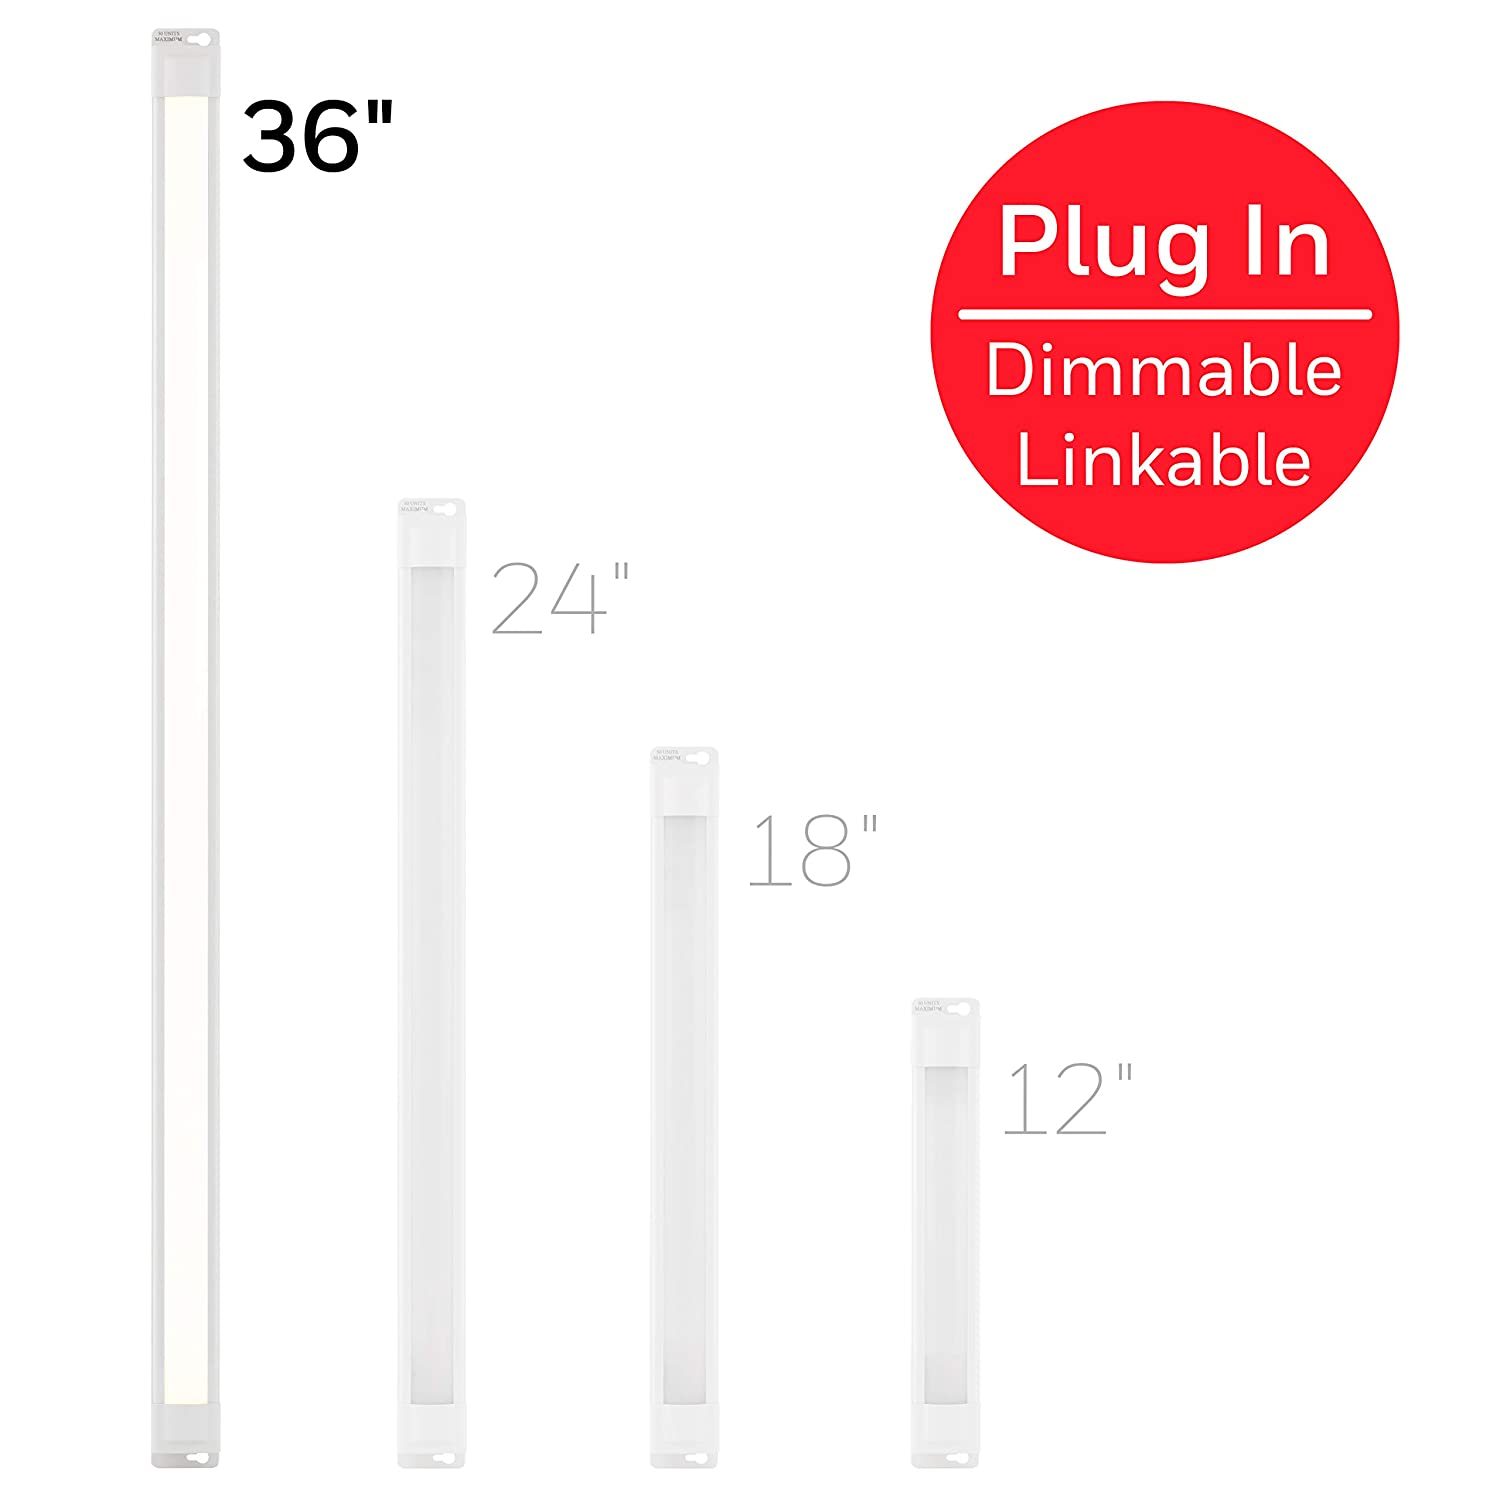 Honeywell 36in. Linkable Fixture, Selectable Brightness, Slim LED Strip, Cabinet, Kitchen Light, HI/Off/Low Switch, Plug-in or Direct Wire, 44108, 36 in, White